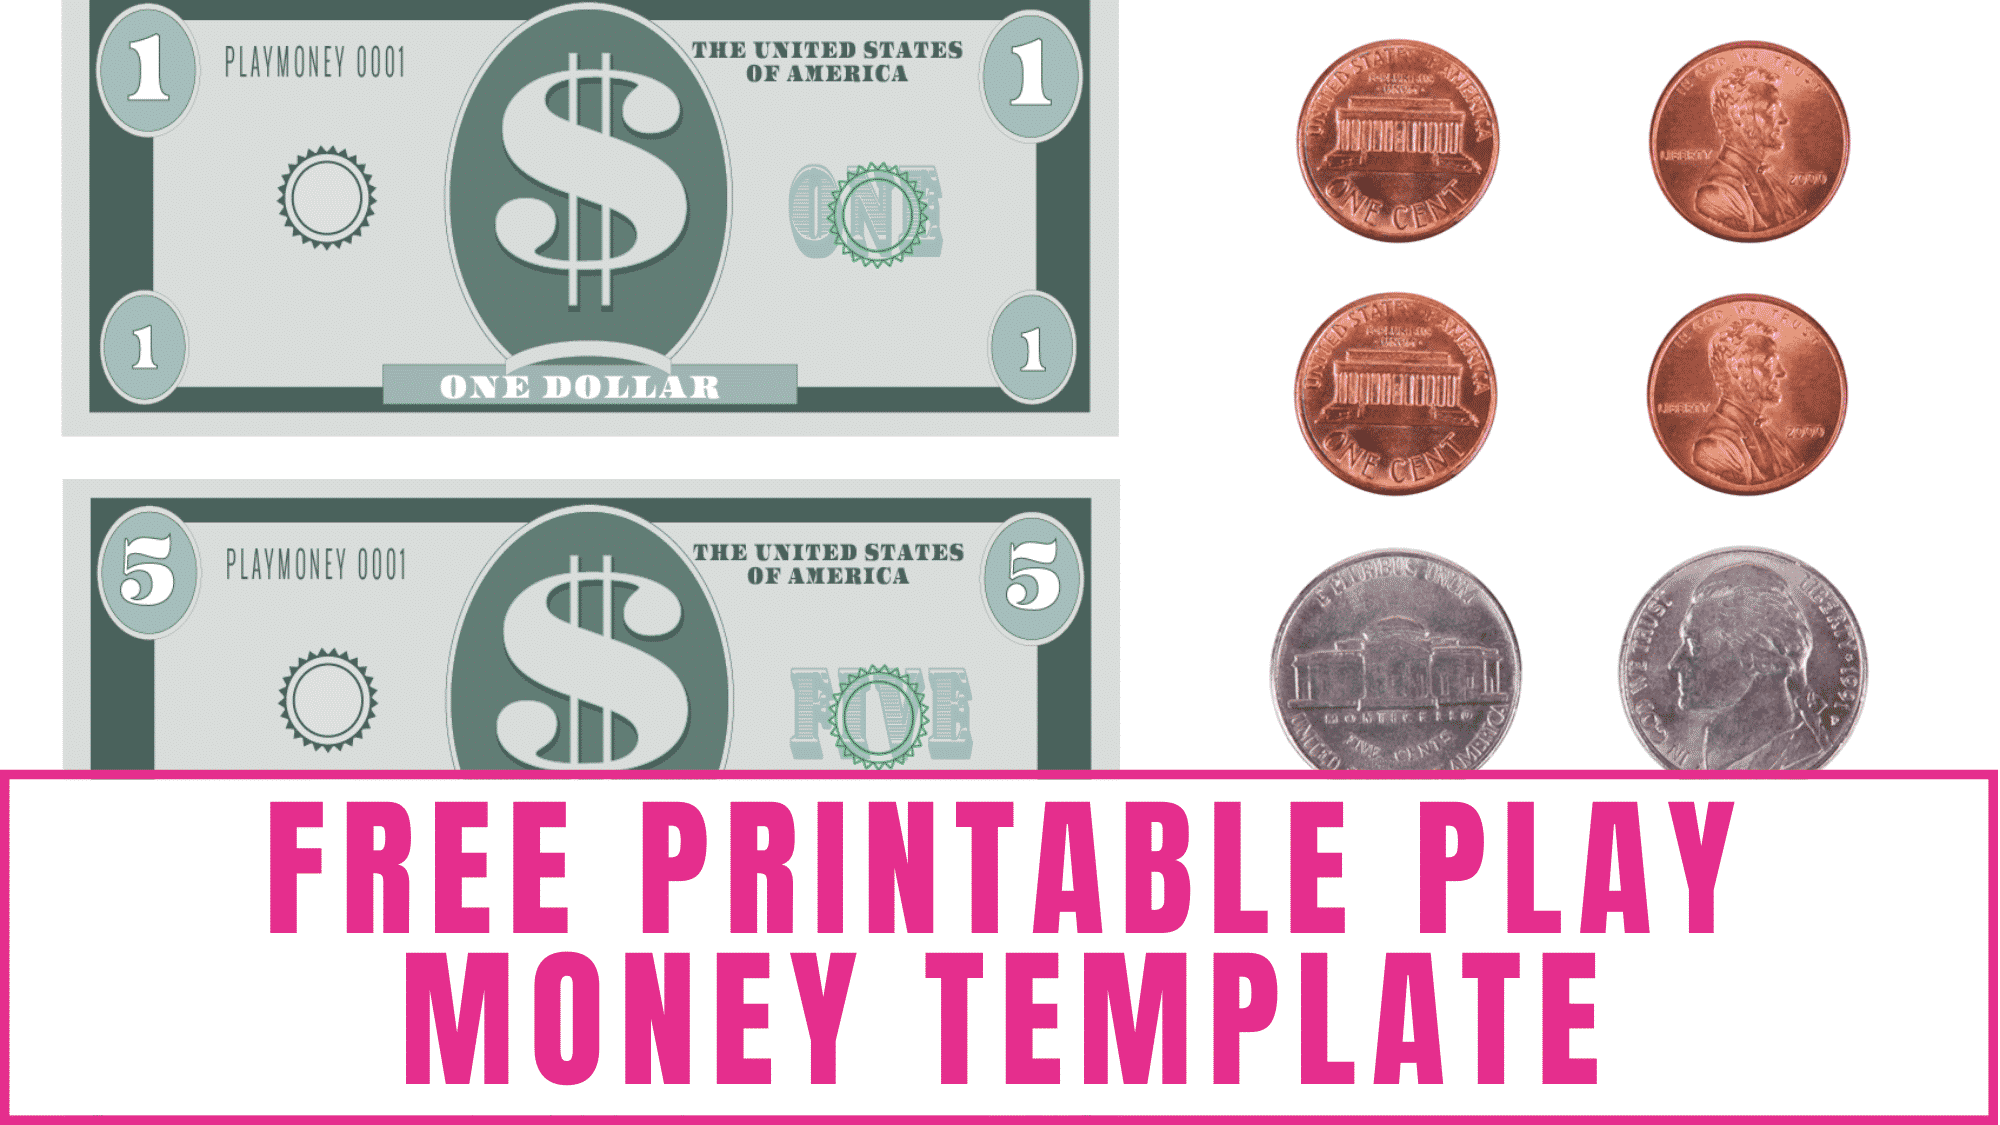 Are you trying to teach your kid about money? This free printable play money template is a helpful educational resource to use when teaching a kid about money. Kids also enjoy playing store with this fake money.